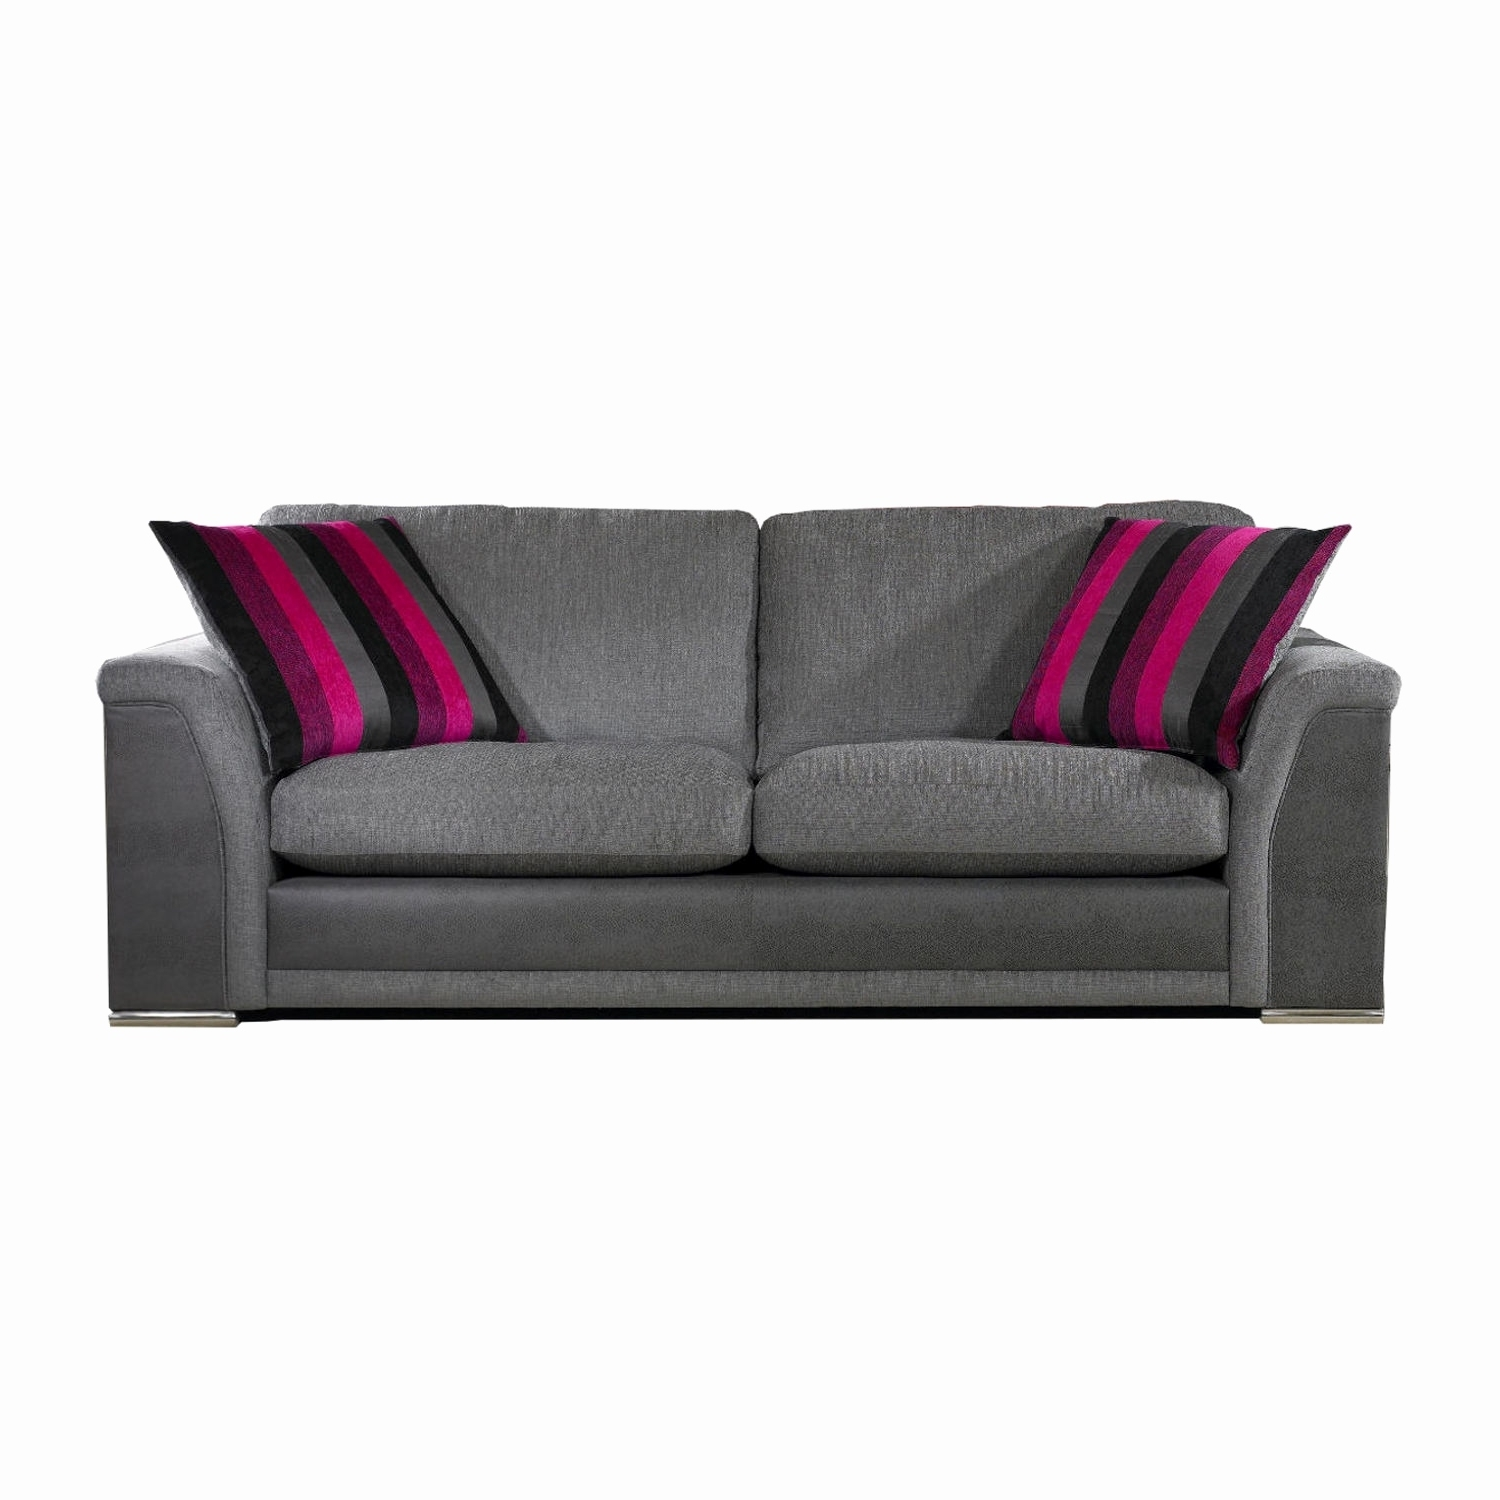 2017 Fresh High Point Sofa 2018 – Couches And Sofas Ideas With Regard To High Point Nc Sectional Sofas (View 1 of 15)